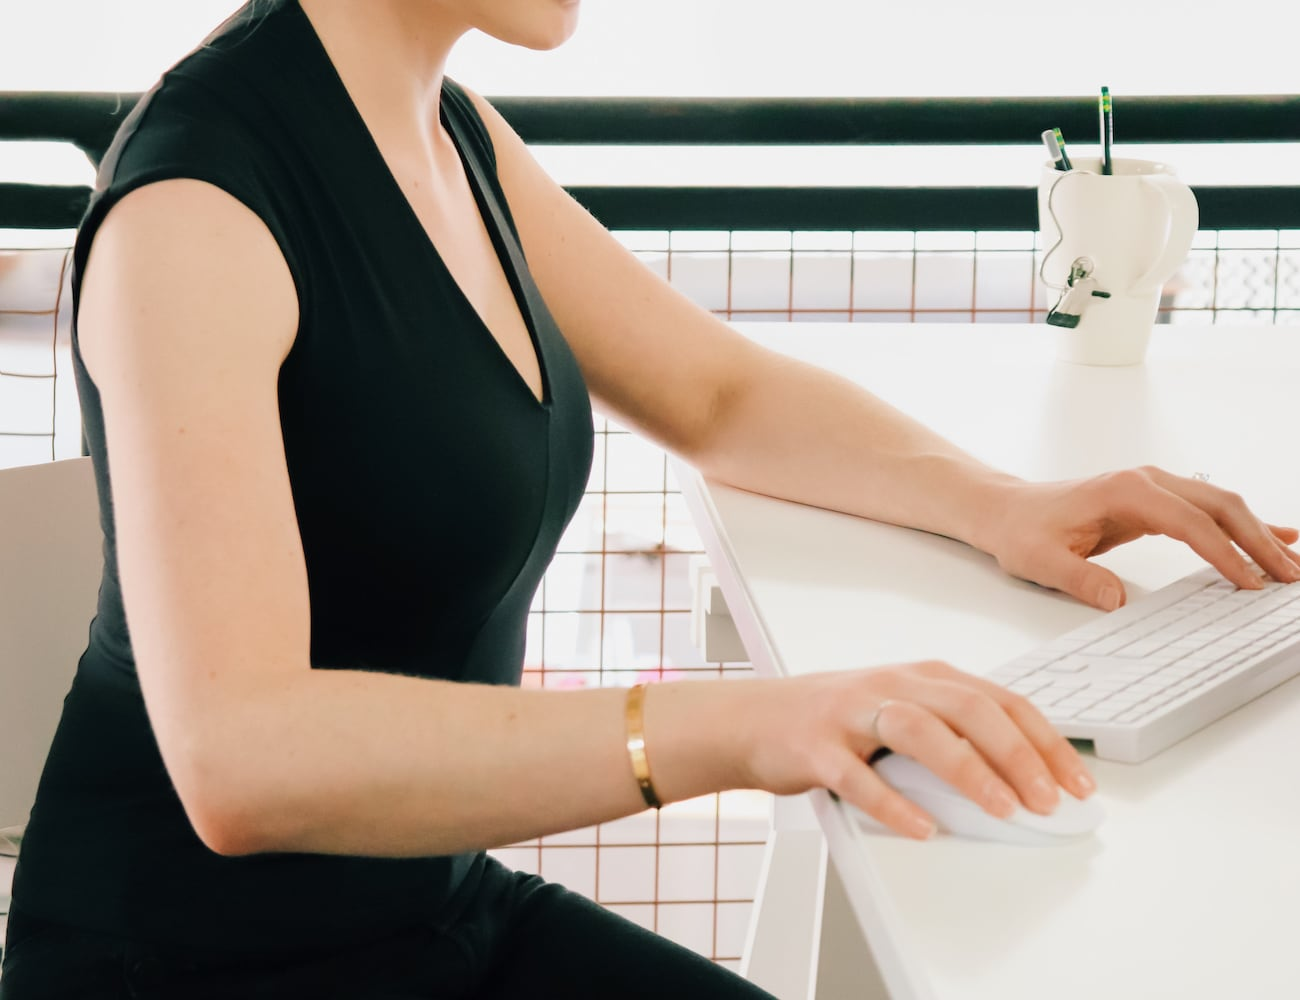 Kinflyte Posture Wear Essentials helps you develop a better a posture